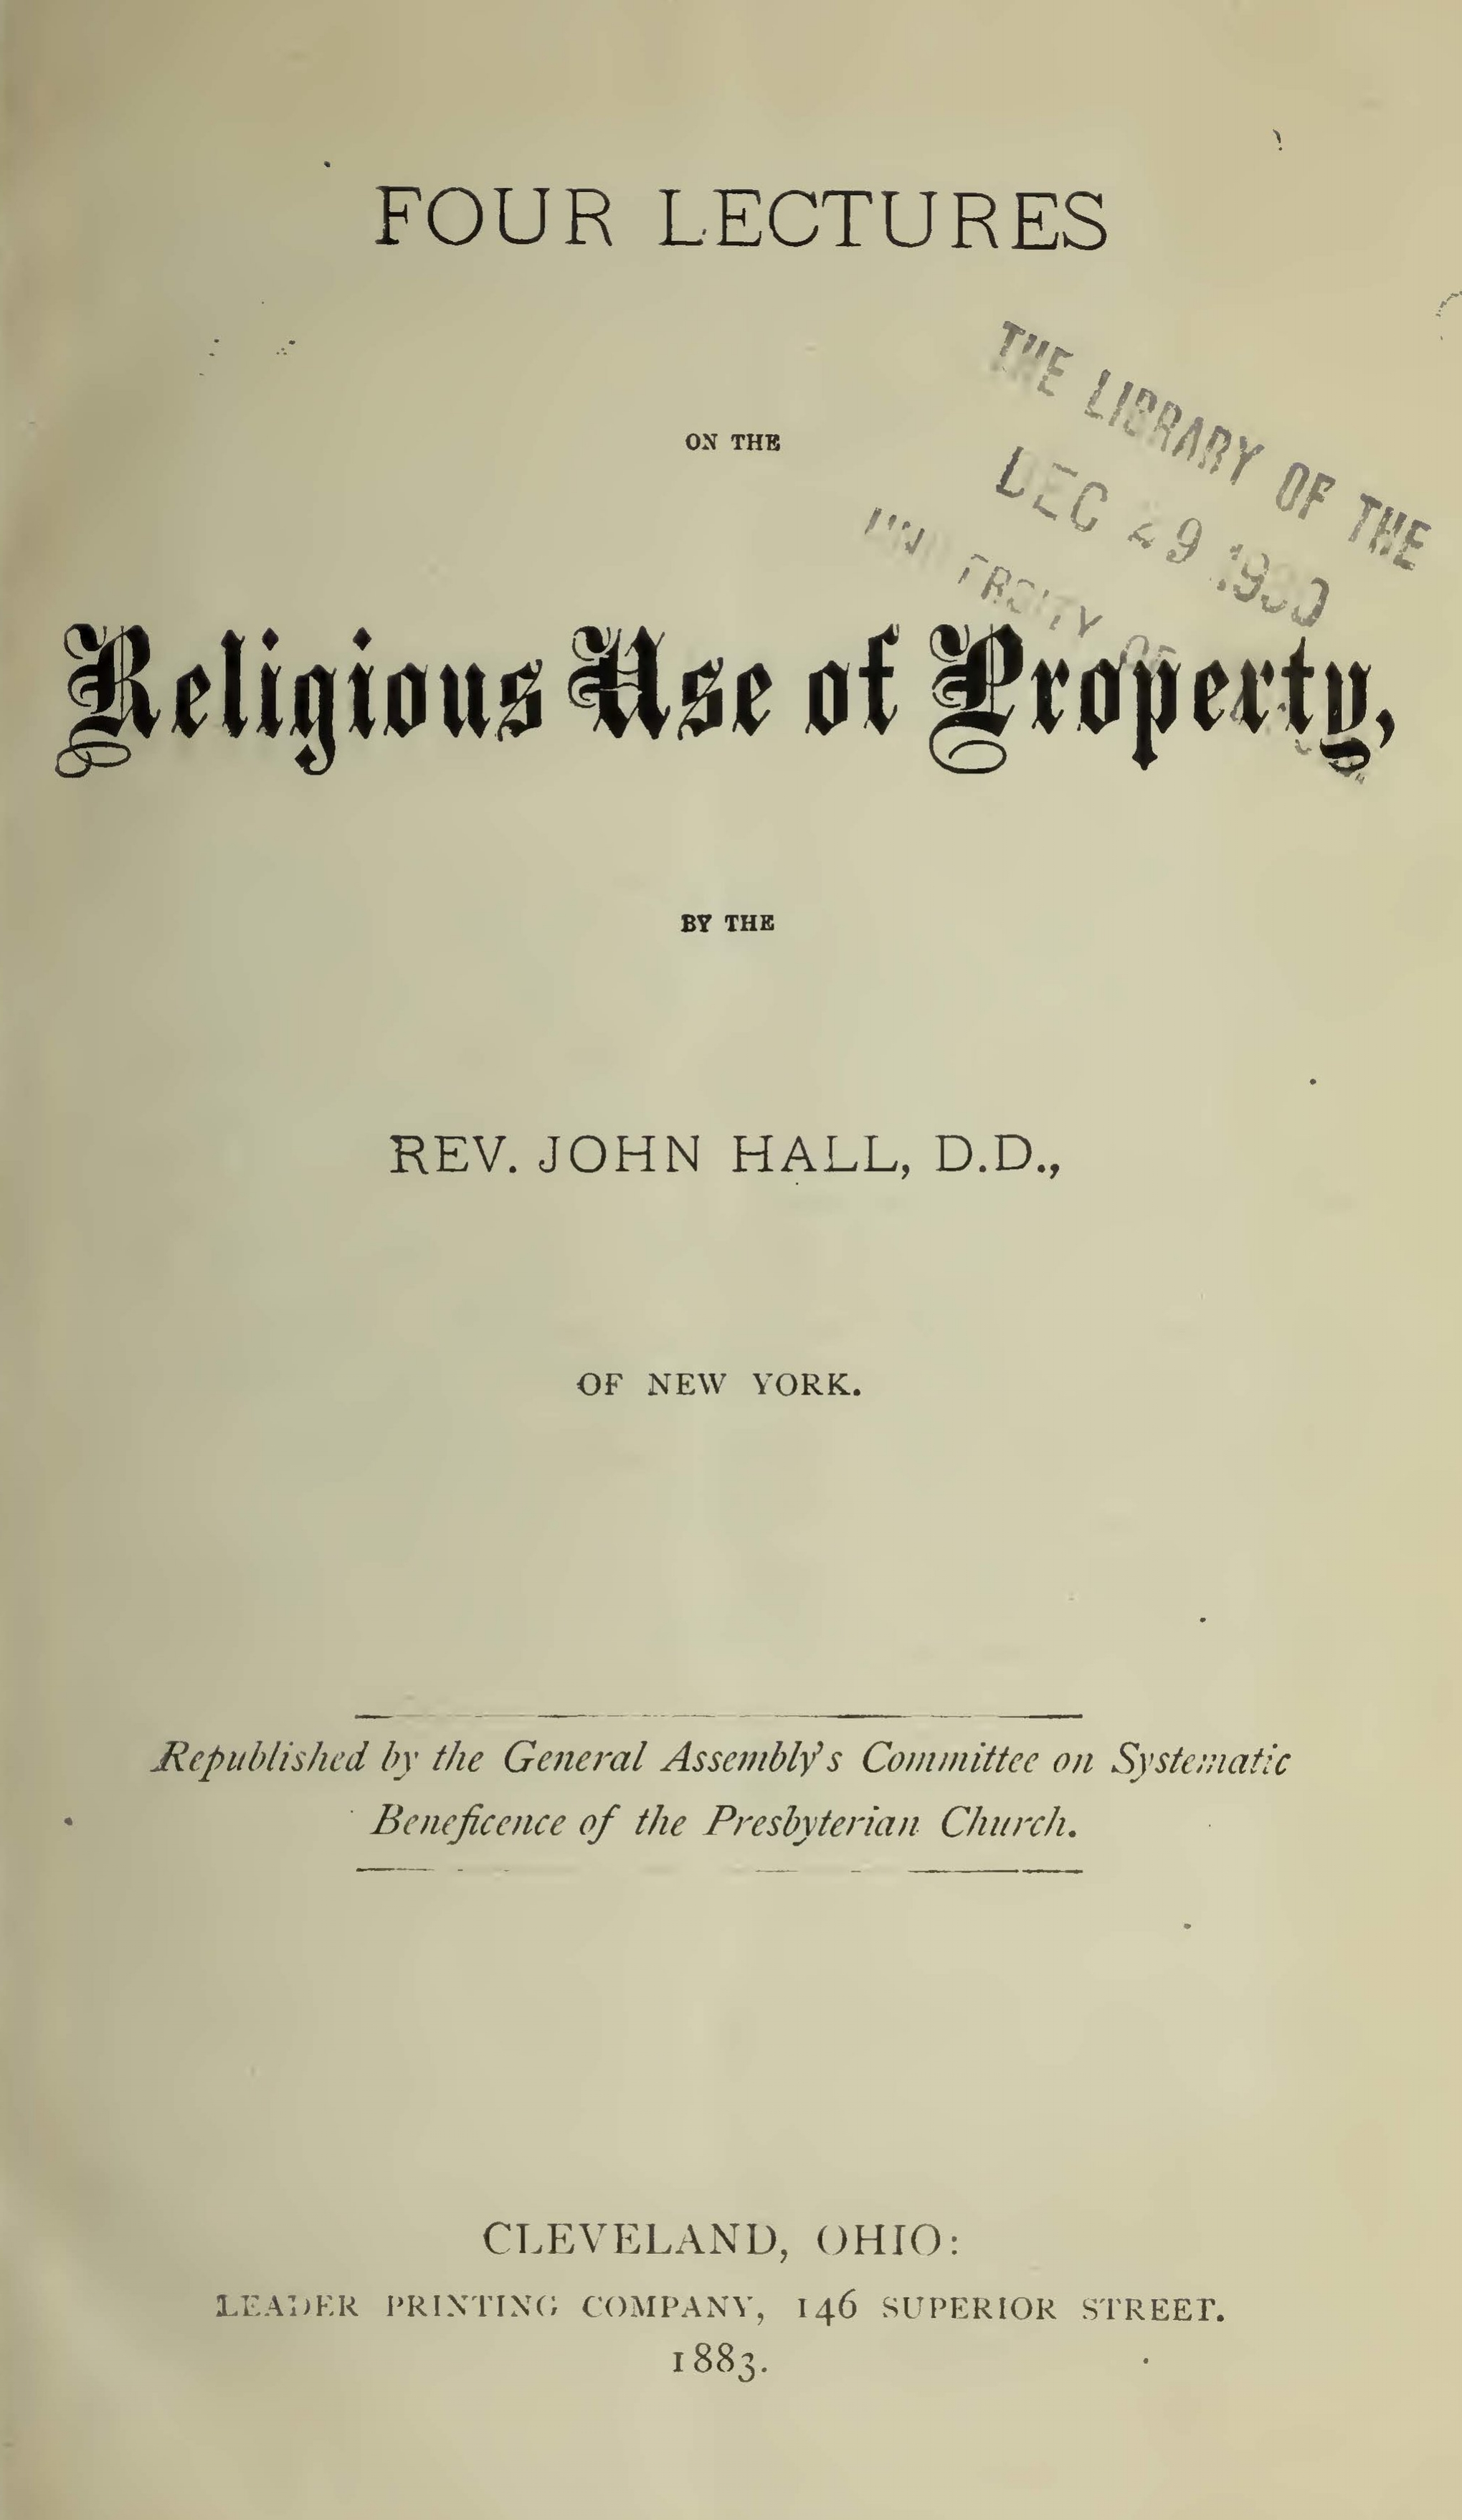 Hall, John, Four Lectures on the Religious Use of Property Title Page.jpg